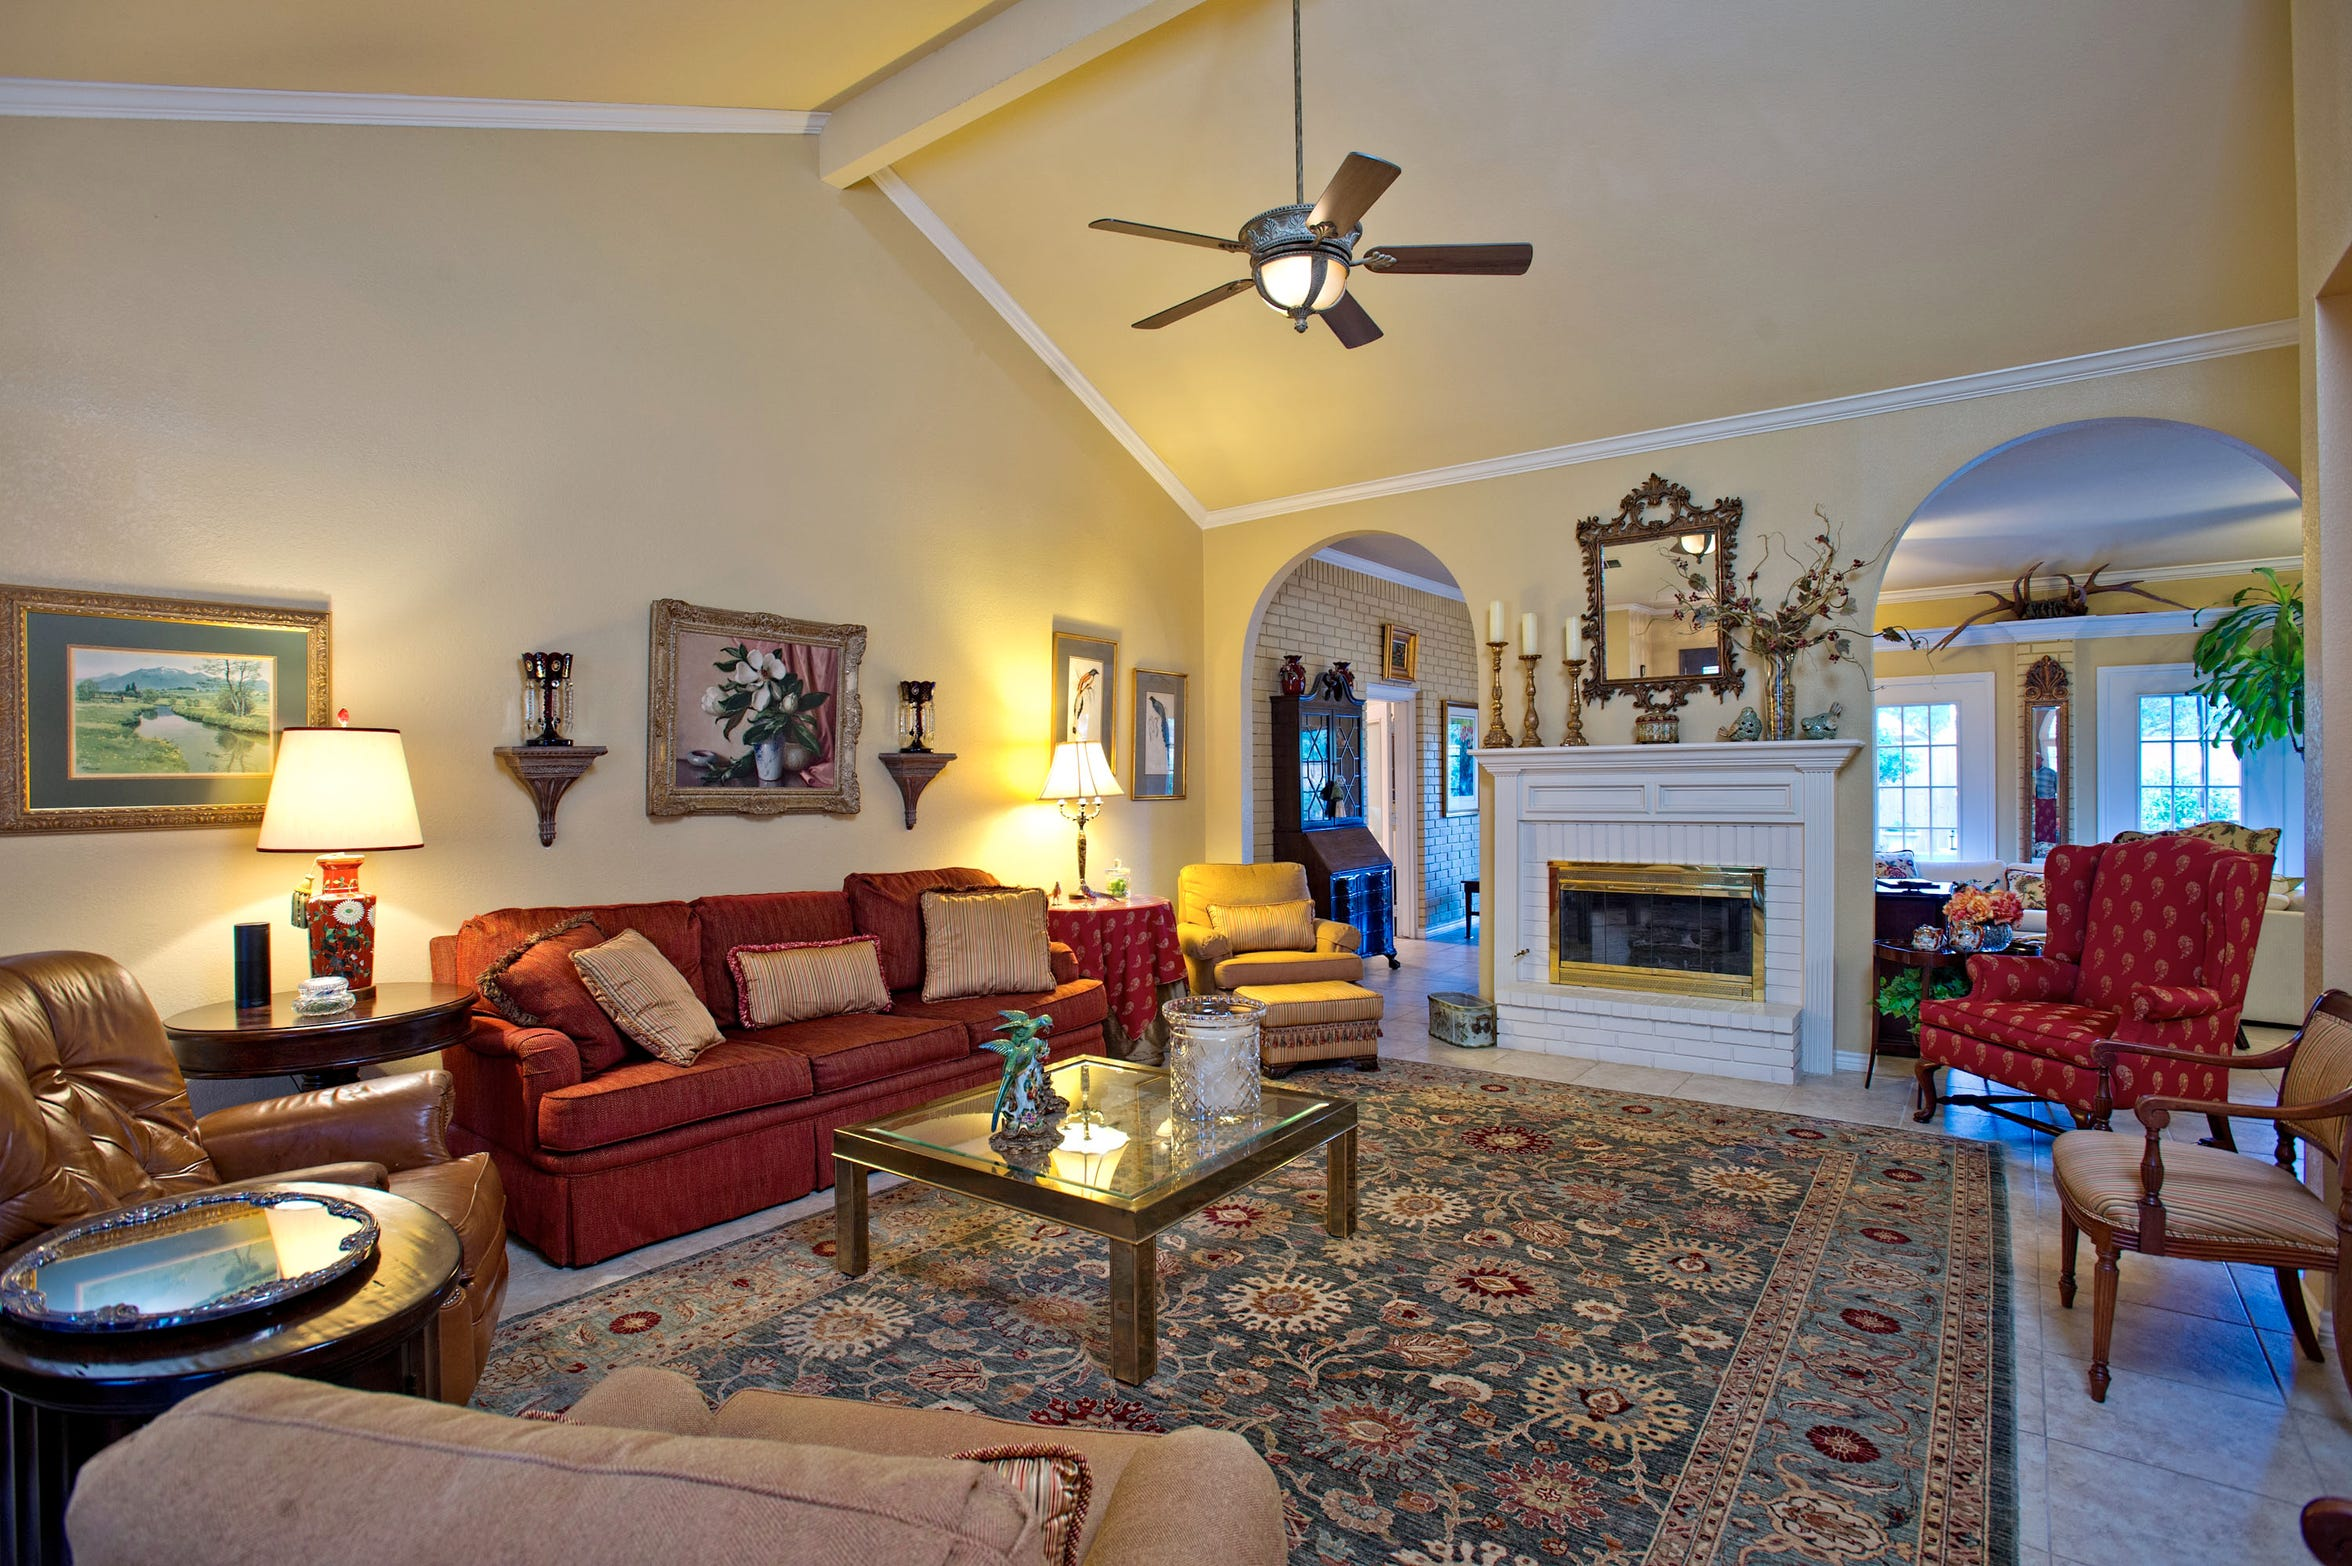 The spacious living area features an attractive fireplace set between two archways, a cathedral ceiling and a columned entry.